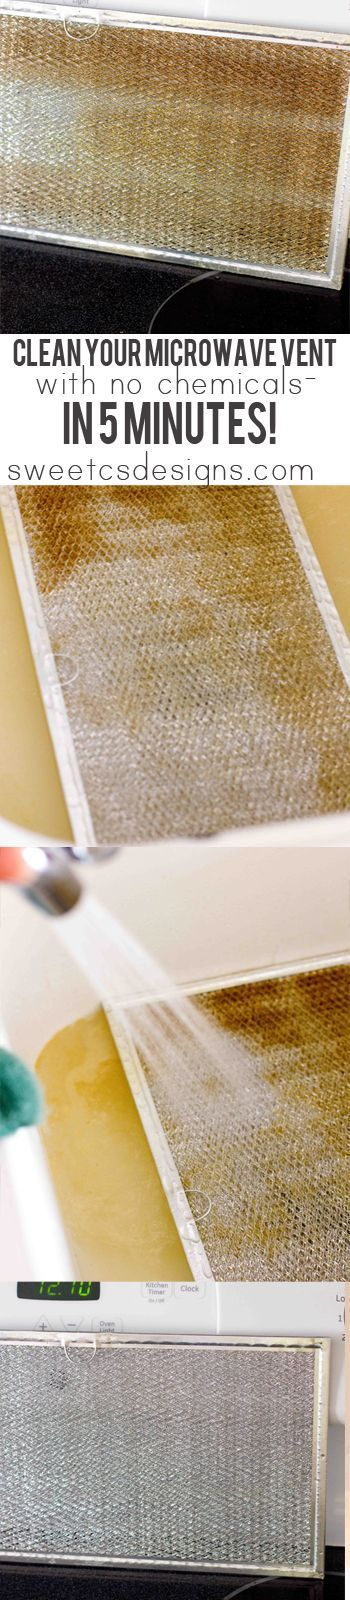 How to clean your under microwave-over stove vent grate without ANY chemicals and hardly any work in under five minutes! This is an AMAZING tip and is SO easy! Perfect for cleaning out funky microwave vent co